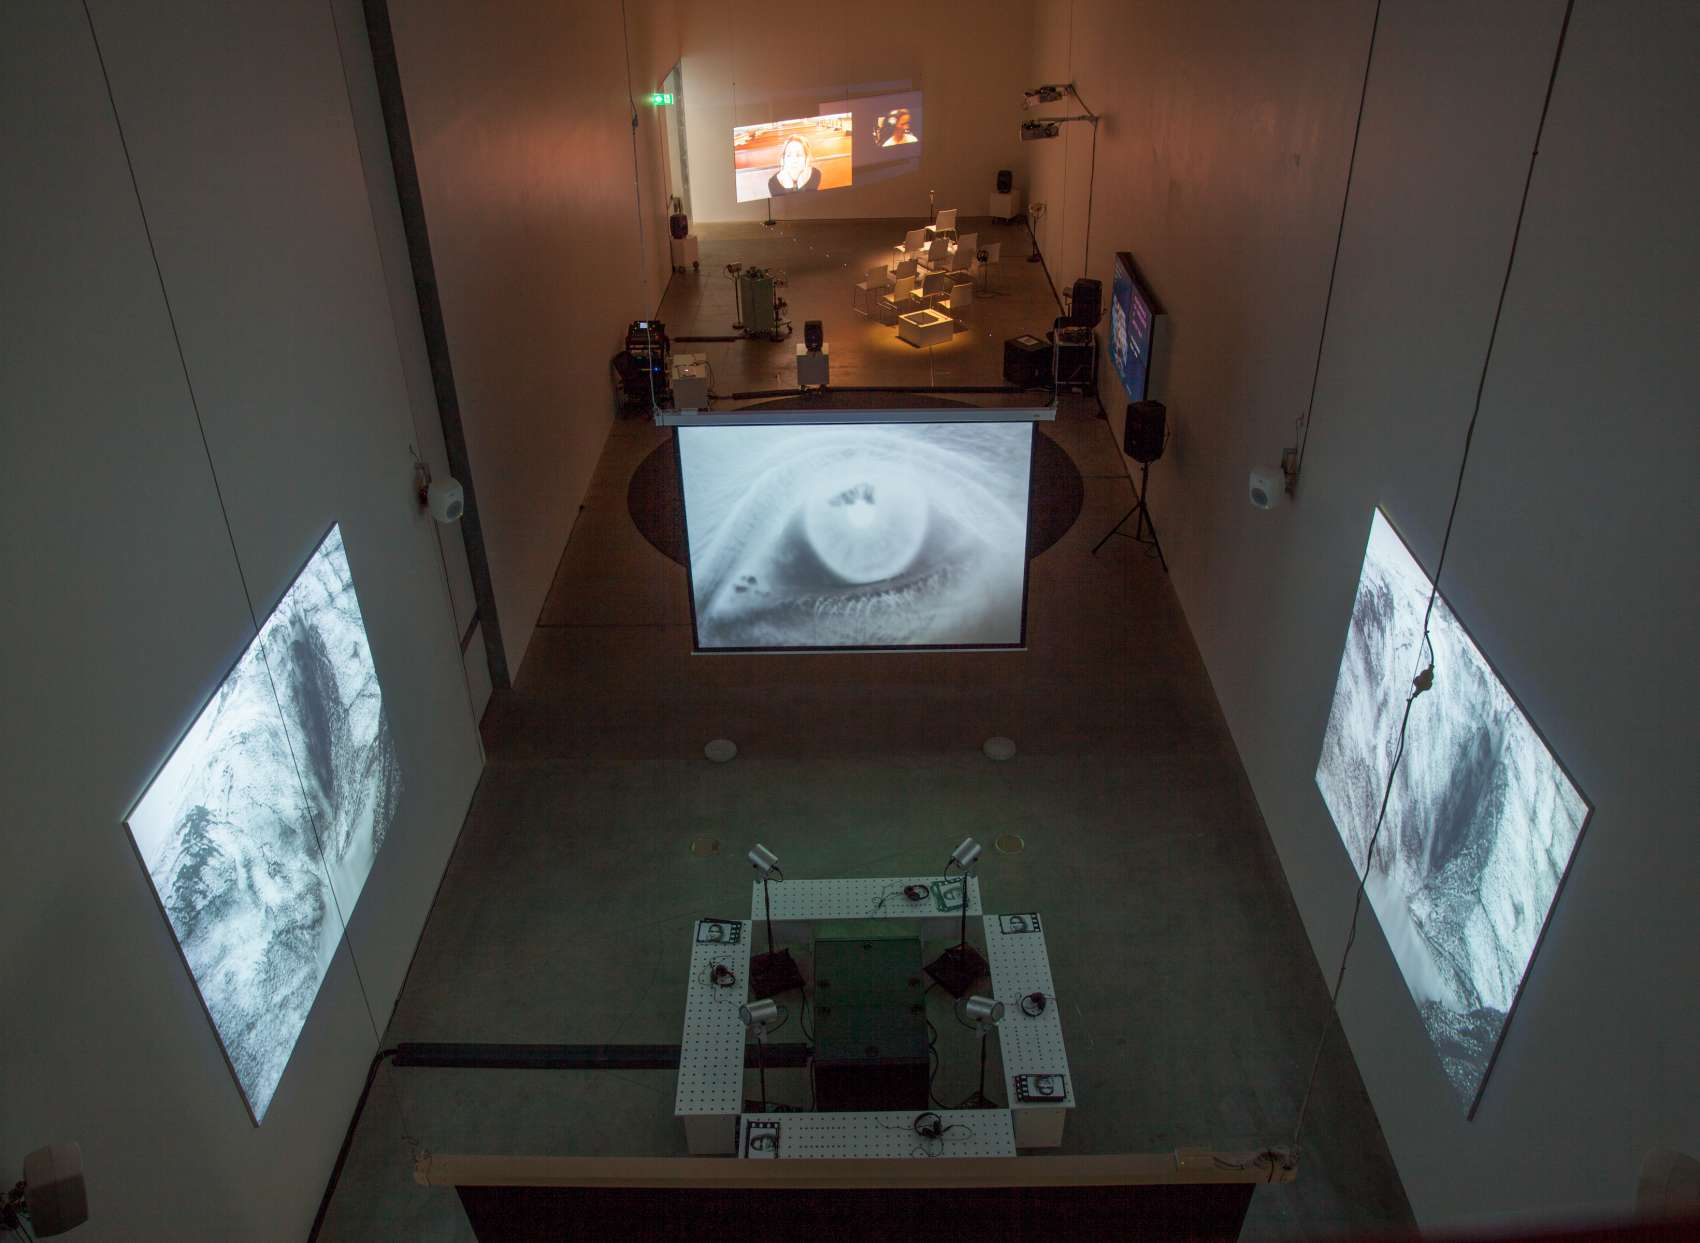 An arial view of an exhibition with screens and headphones.